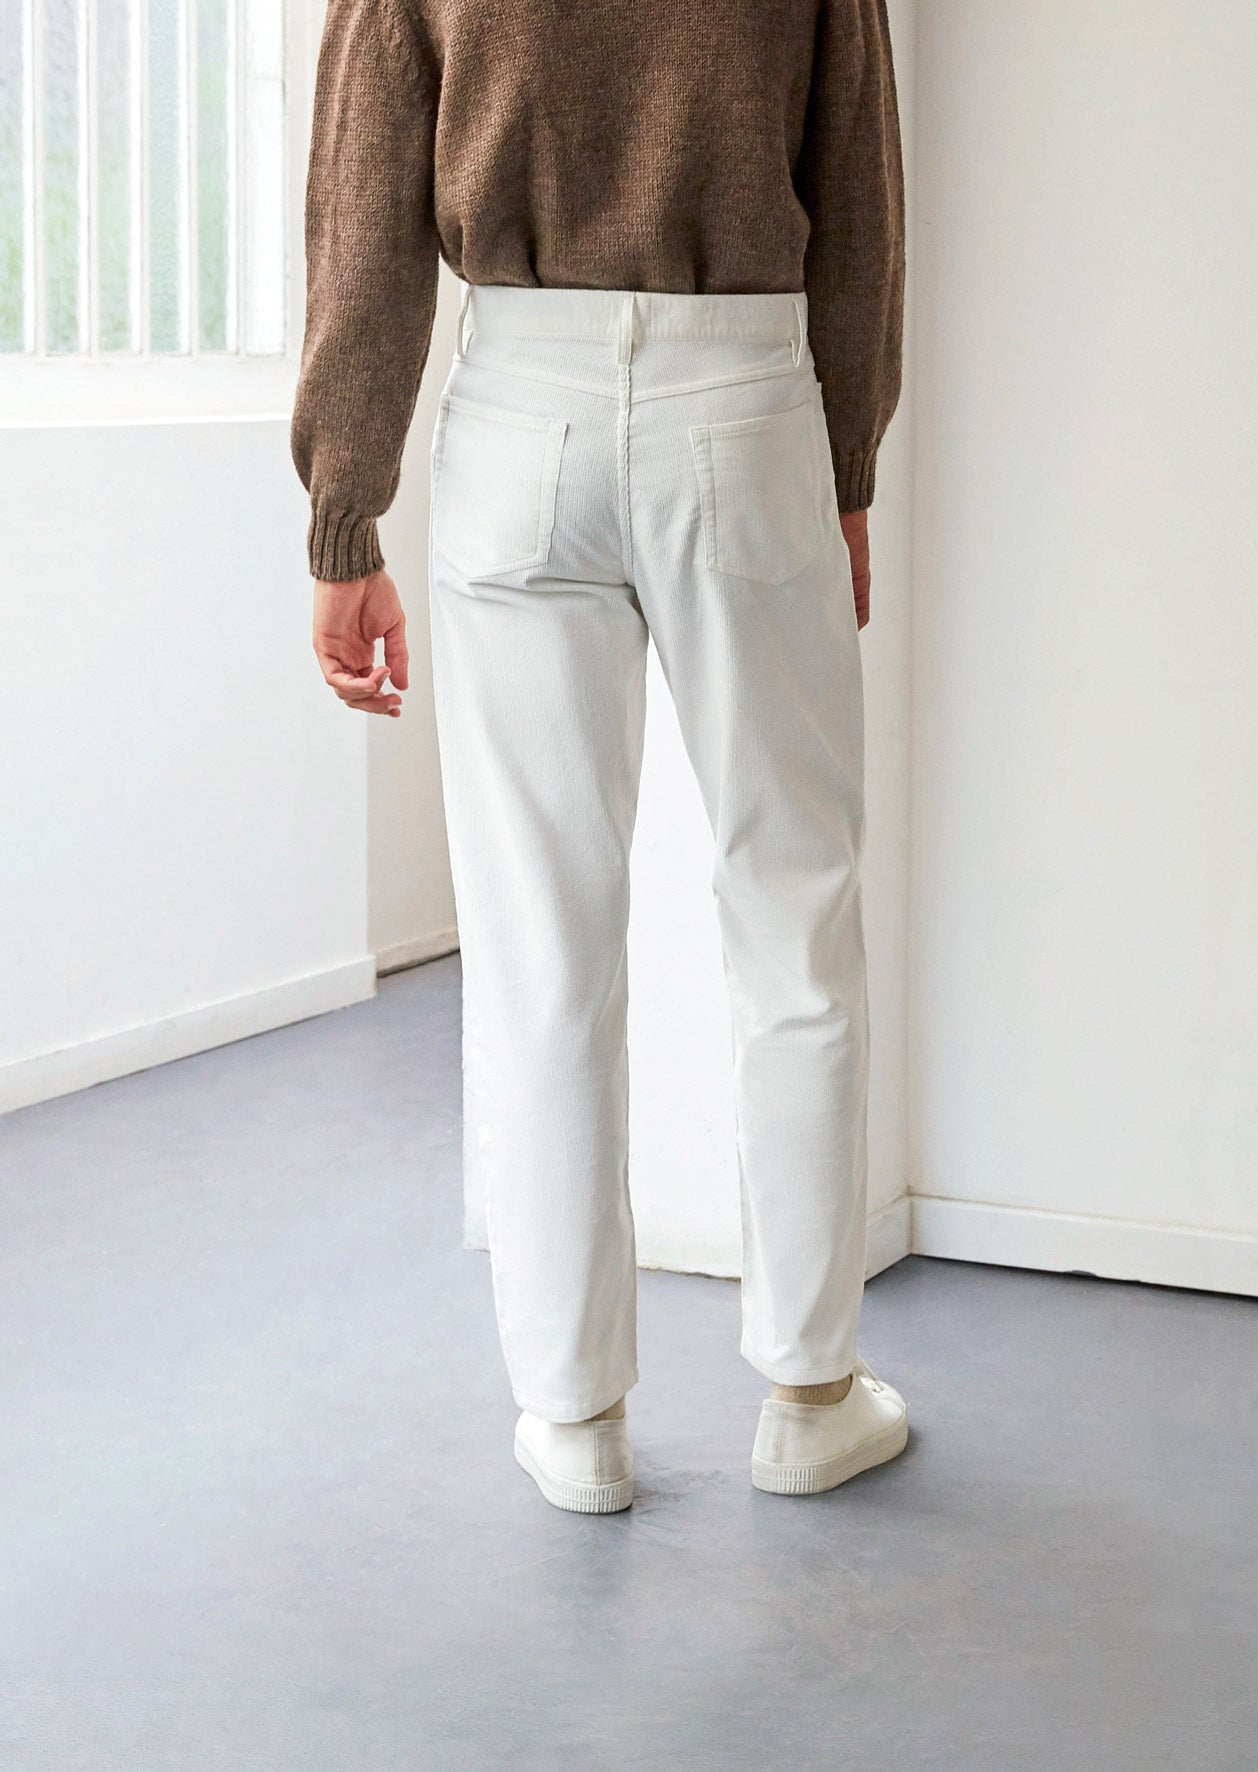 5 Pocket trousers - English medium wale corduroy - White